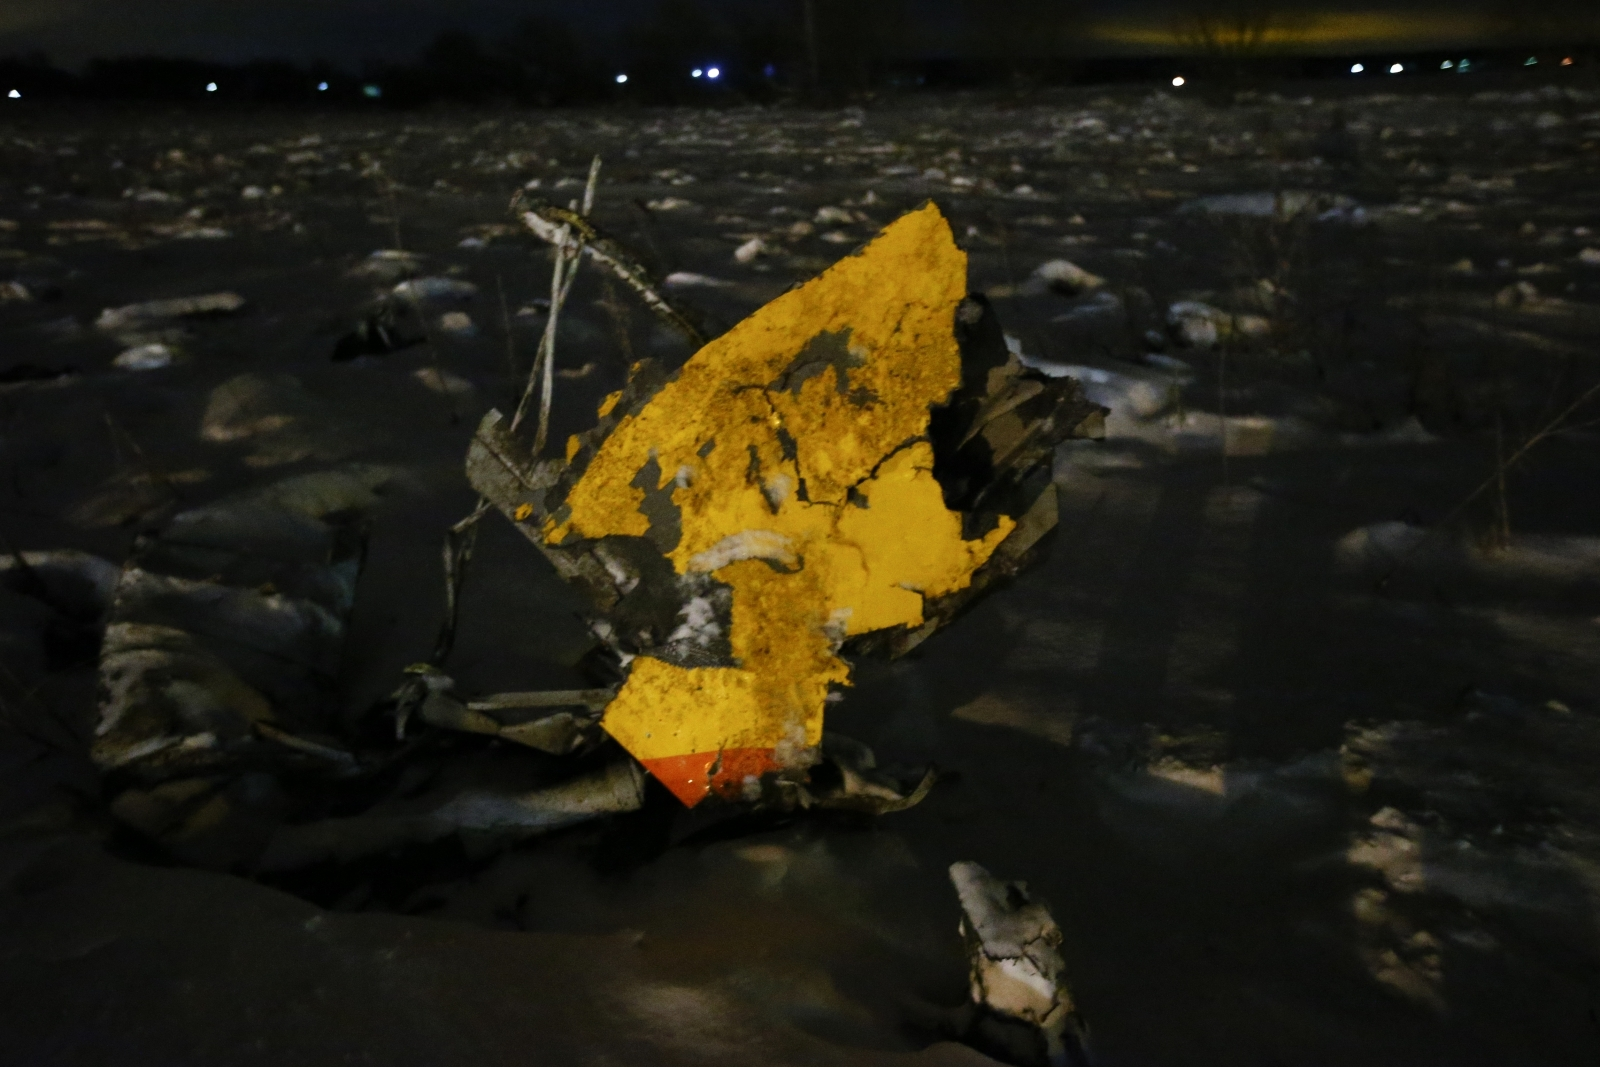 Faulty sensors possible cause of Russian plane crash